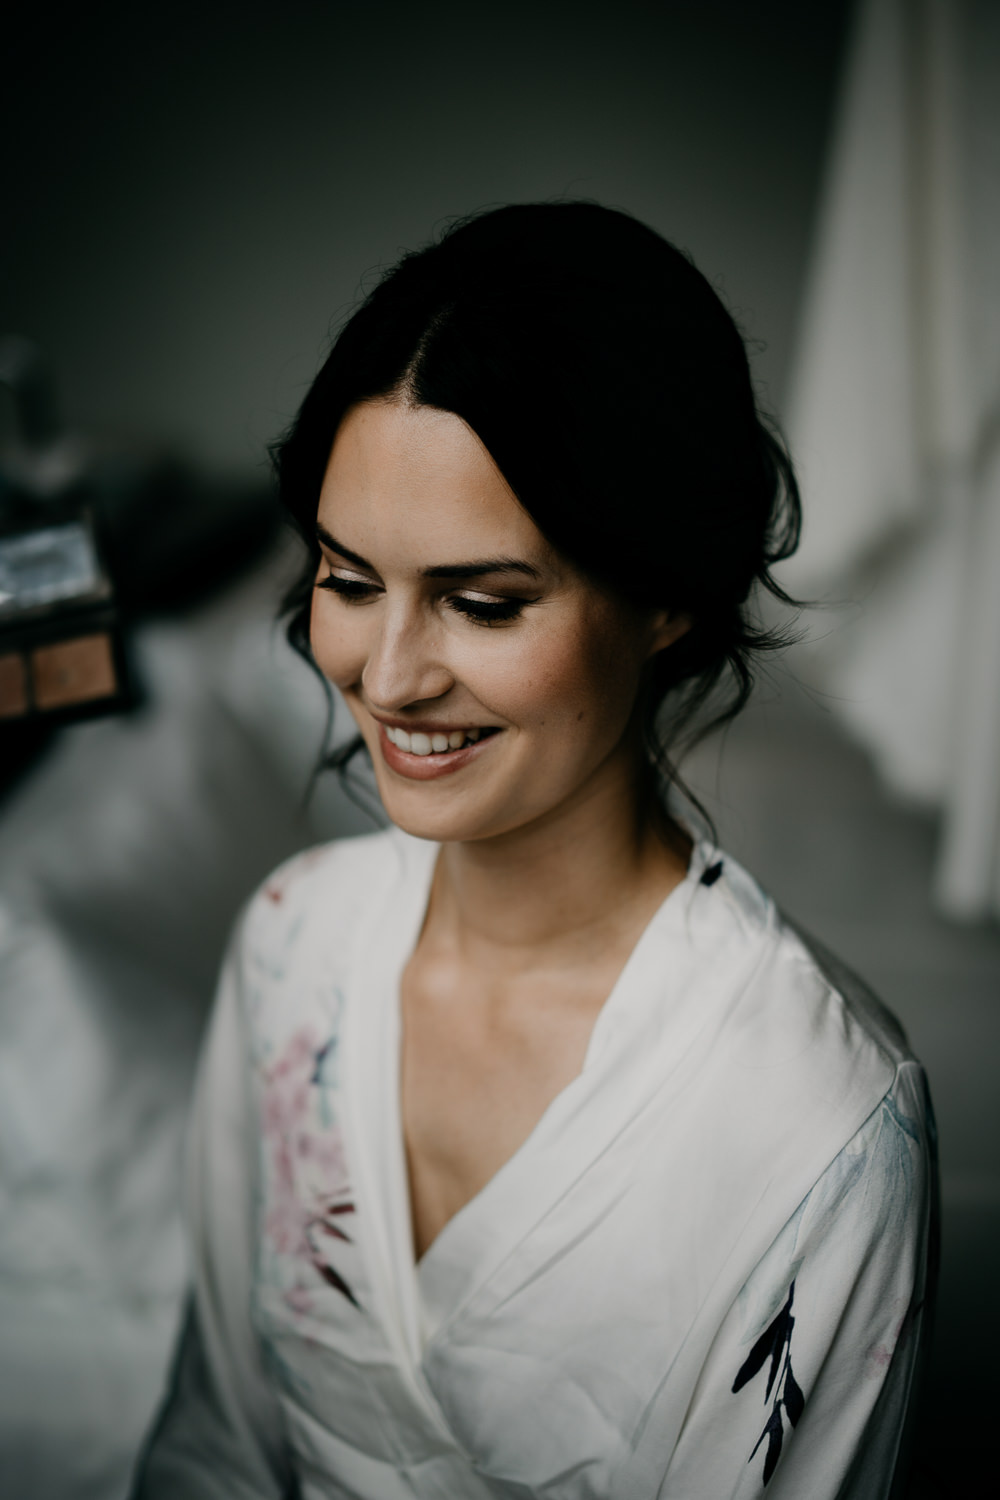 trouwfotografie amsterdam happy bride by mark hadden amsterdam wedding photographer